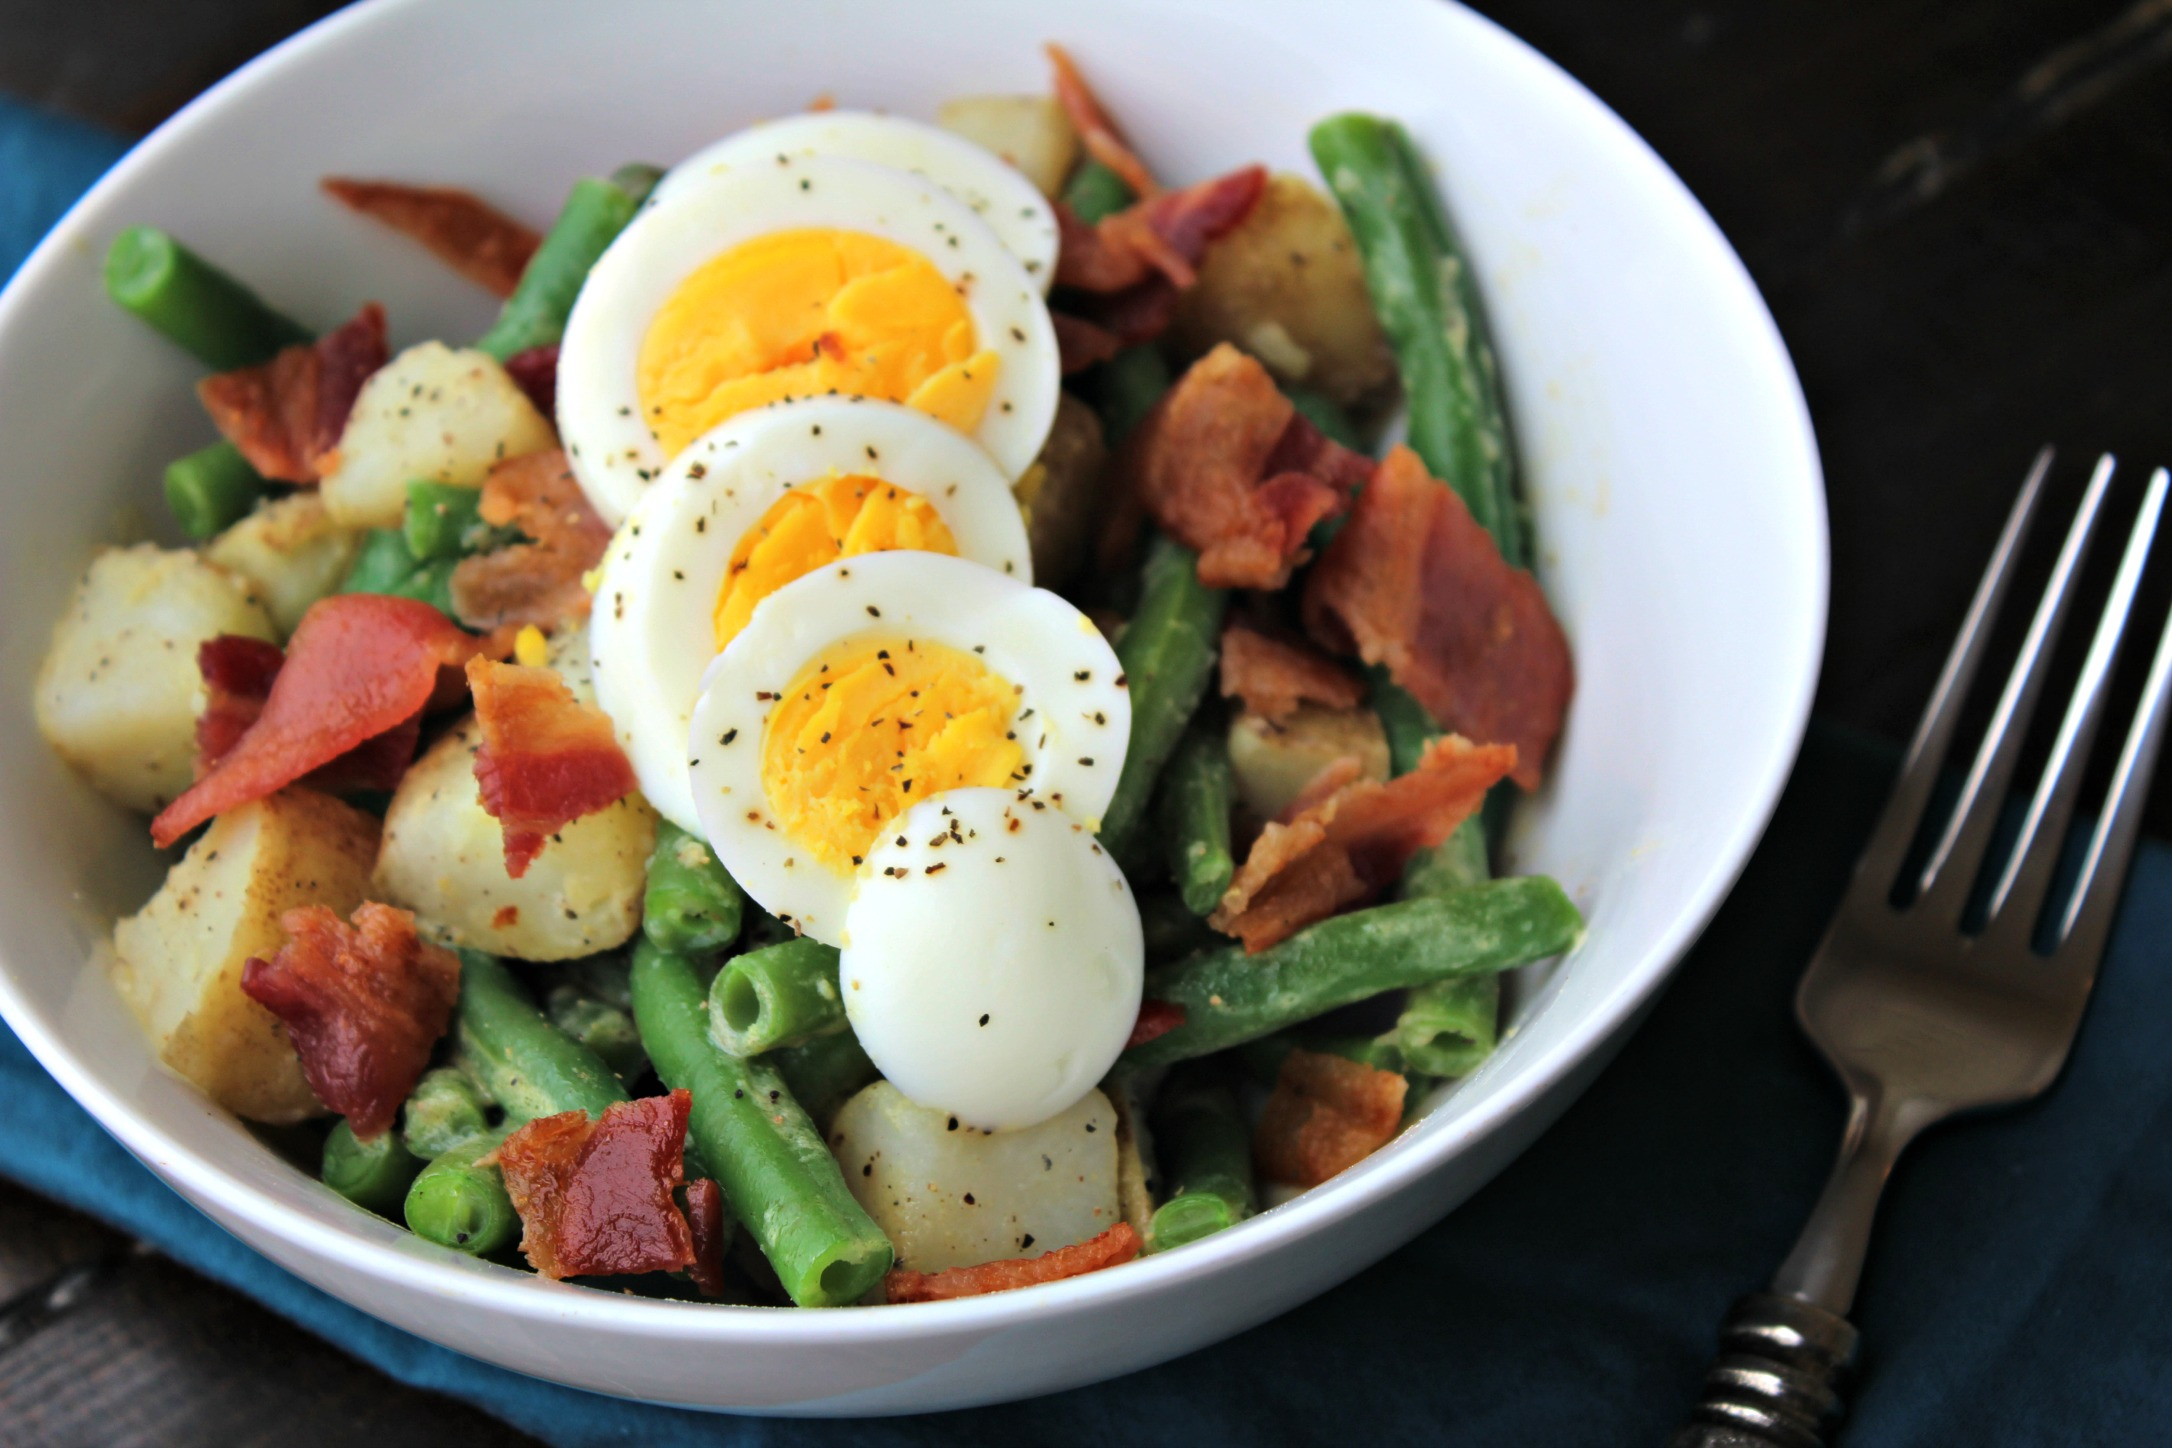 Green Bean, Bacon, Egg & Potato Salad